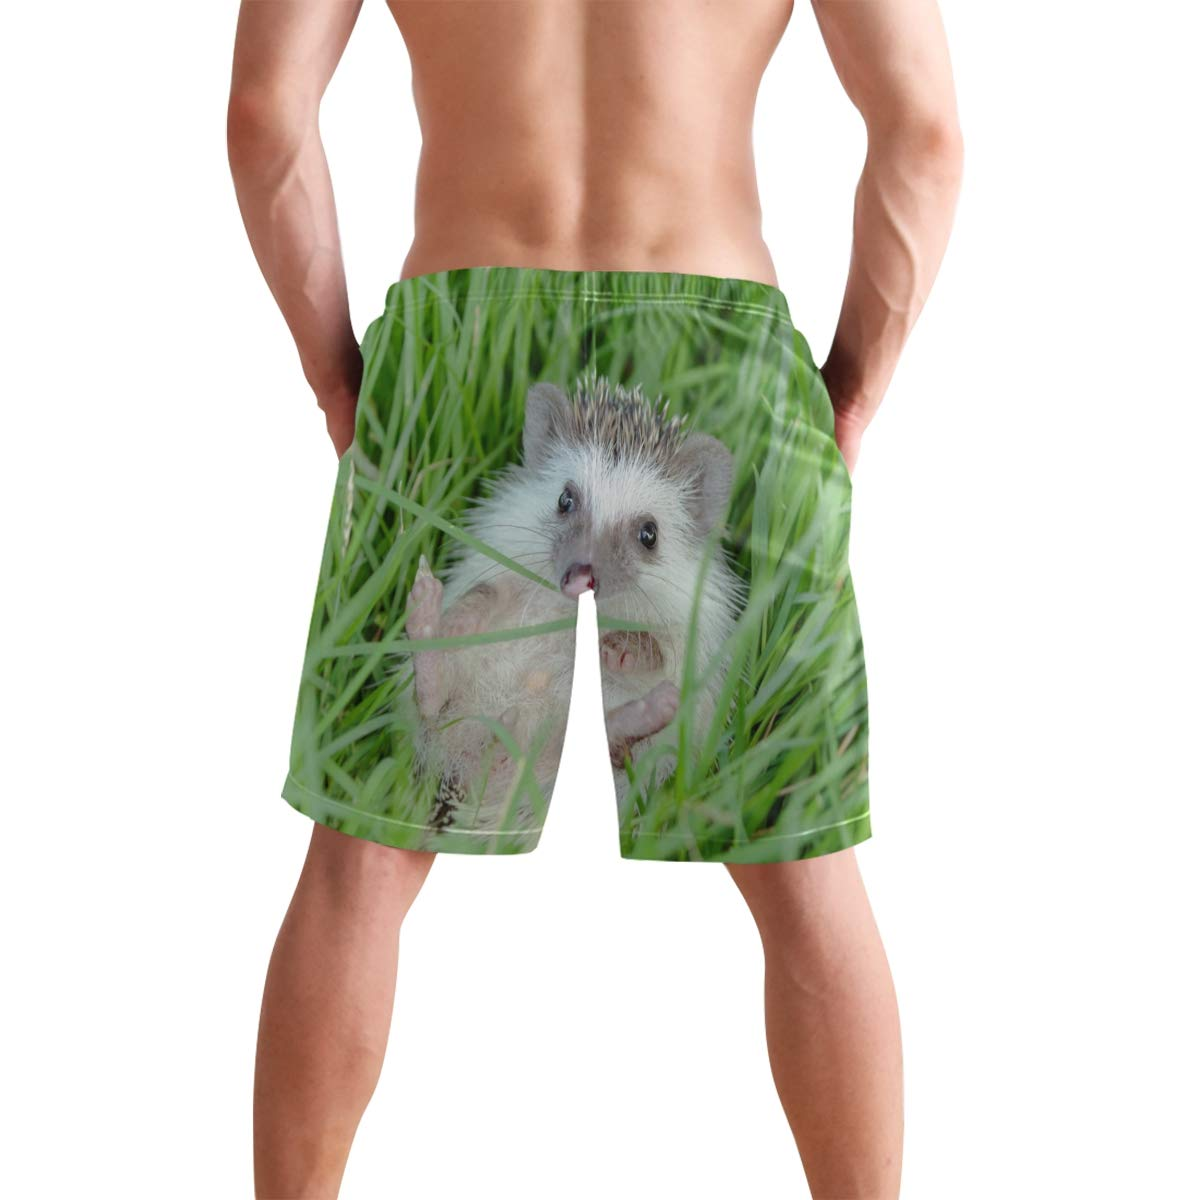 JERECY Mens Swim Trunks Cute Hedgehog Quick Dry Board Shorts with Drawstring and Pockets